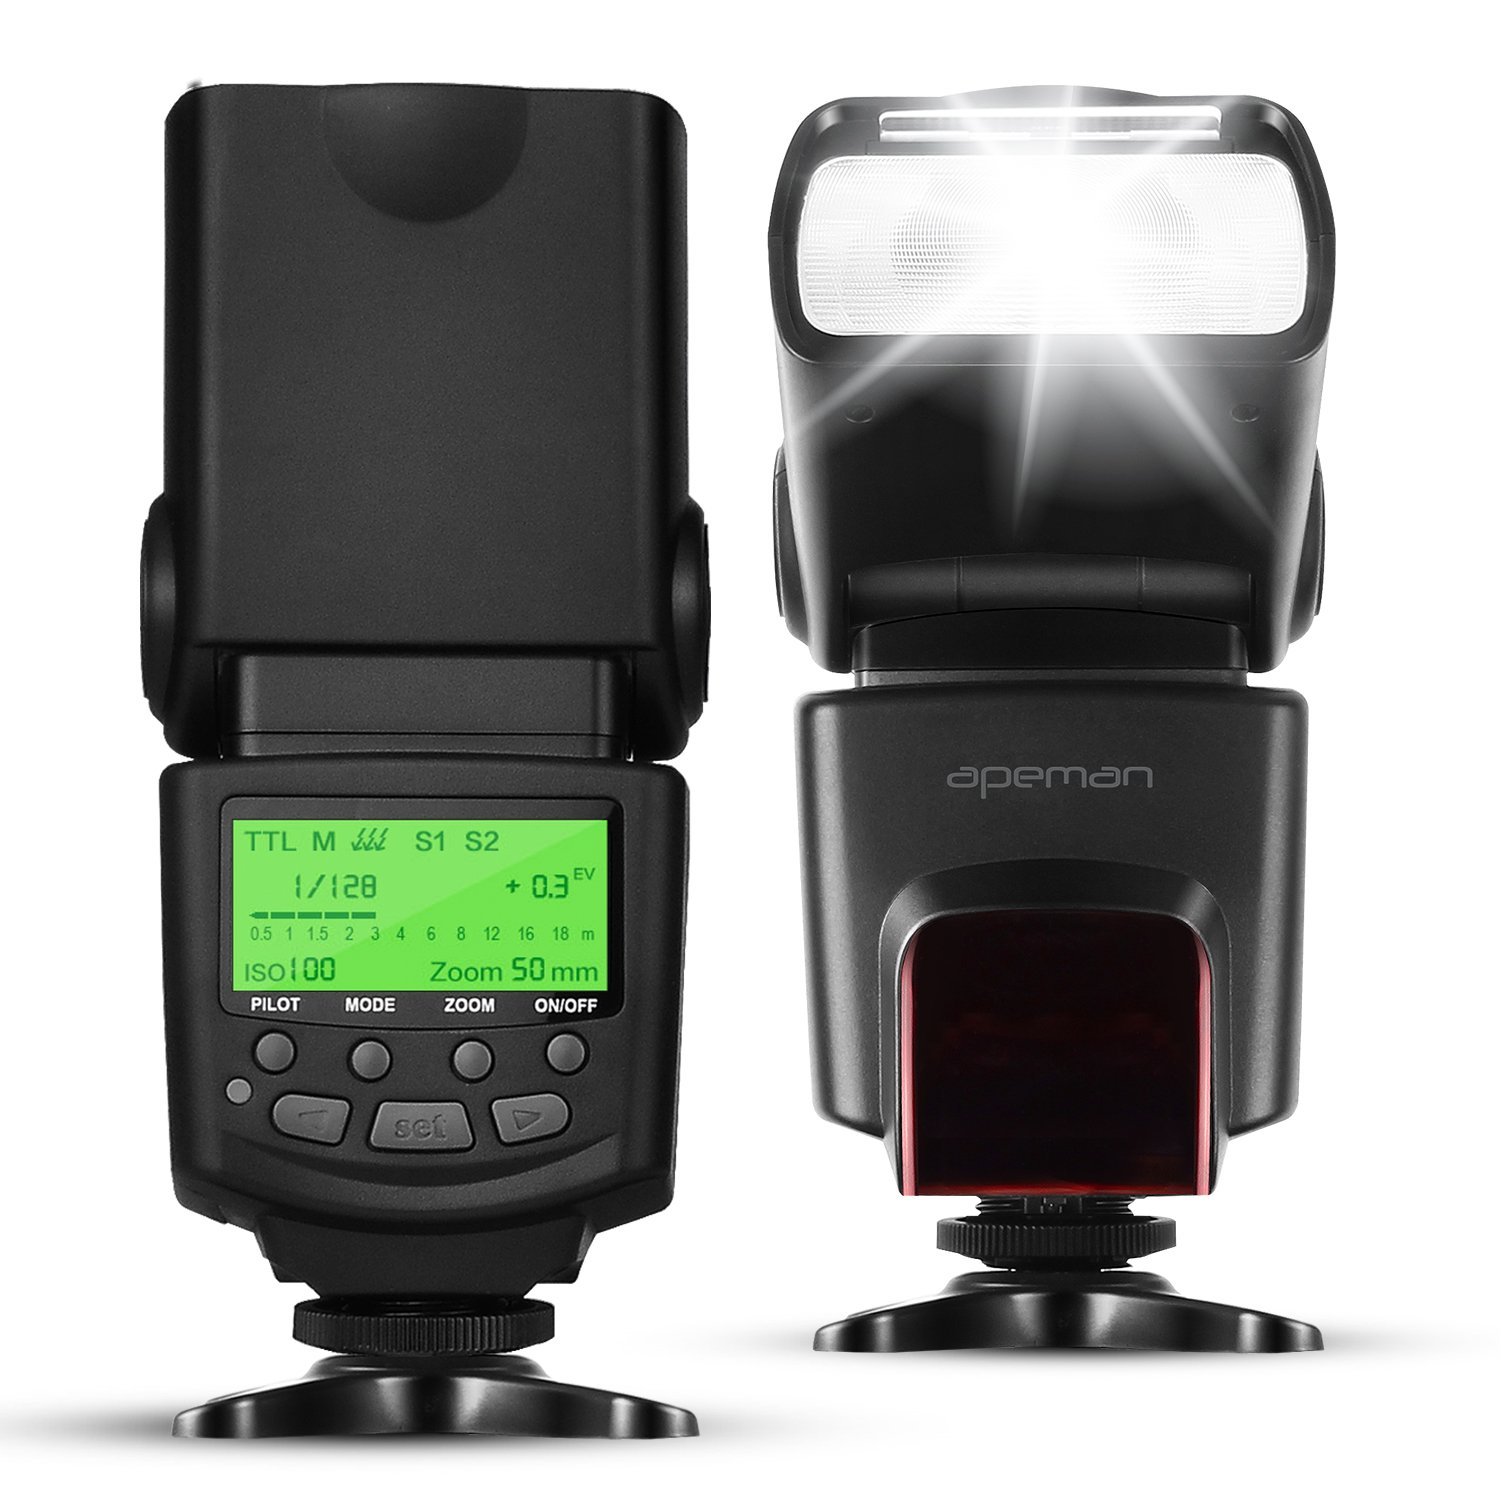 APEMAN E-TTL Speedlite Flash for Canon Kit LCD Display Light for All Canon DSLR EOS Cameras Standard Hot Shoe as Canon 1D 1Ds 5D MARK 2 6D 7D 50DT3I T2I 60D 70D 100D 500D 550D 650D etc